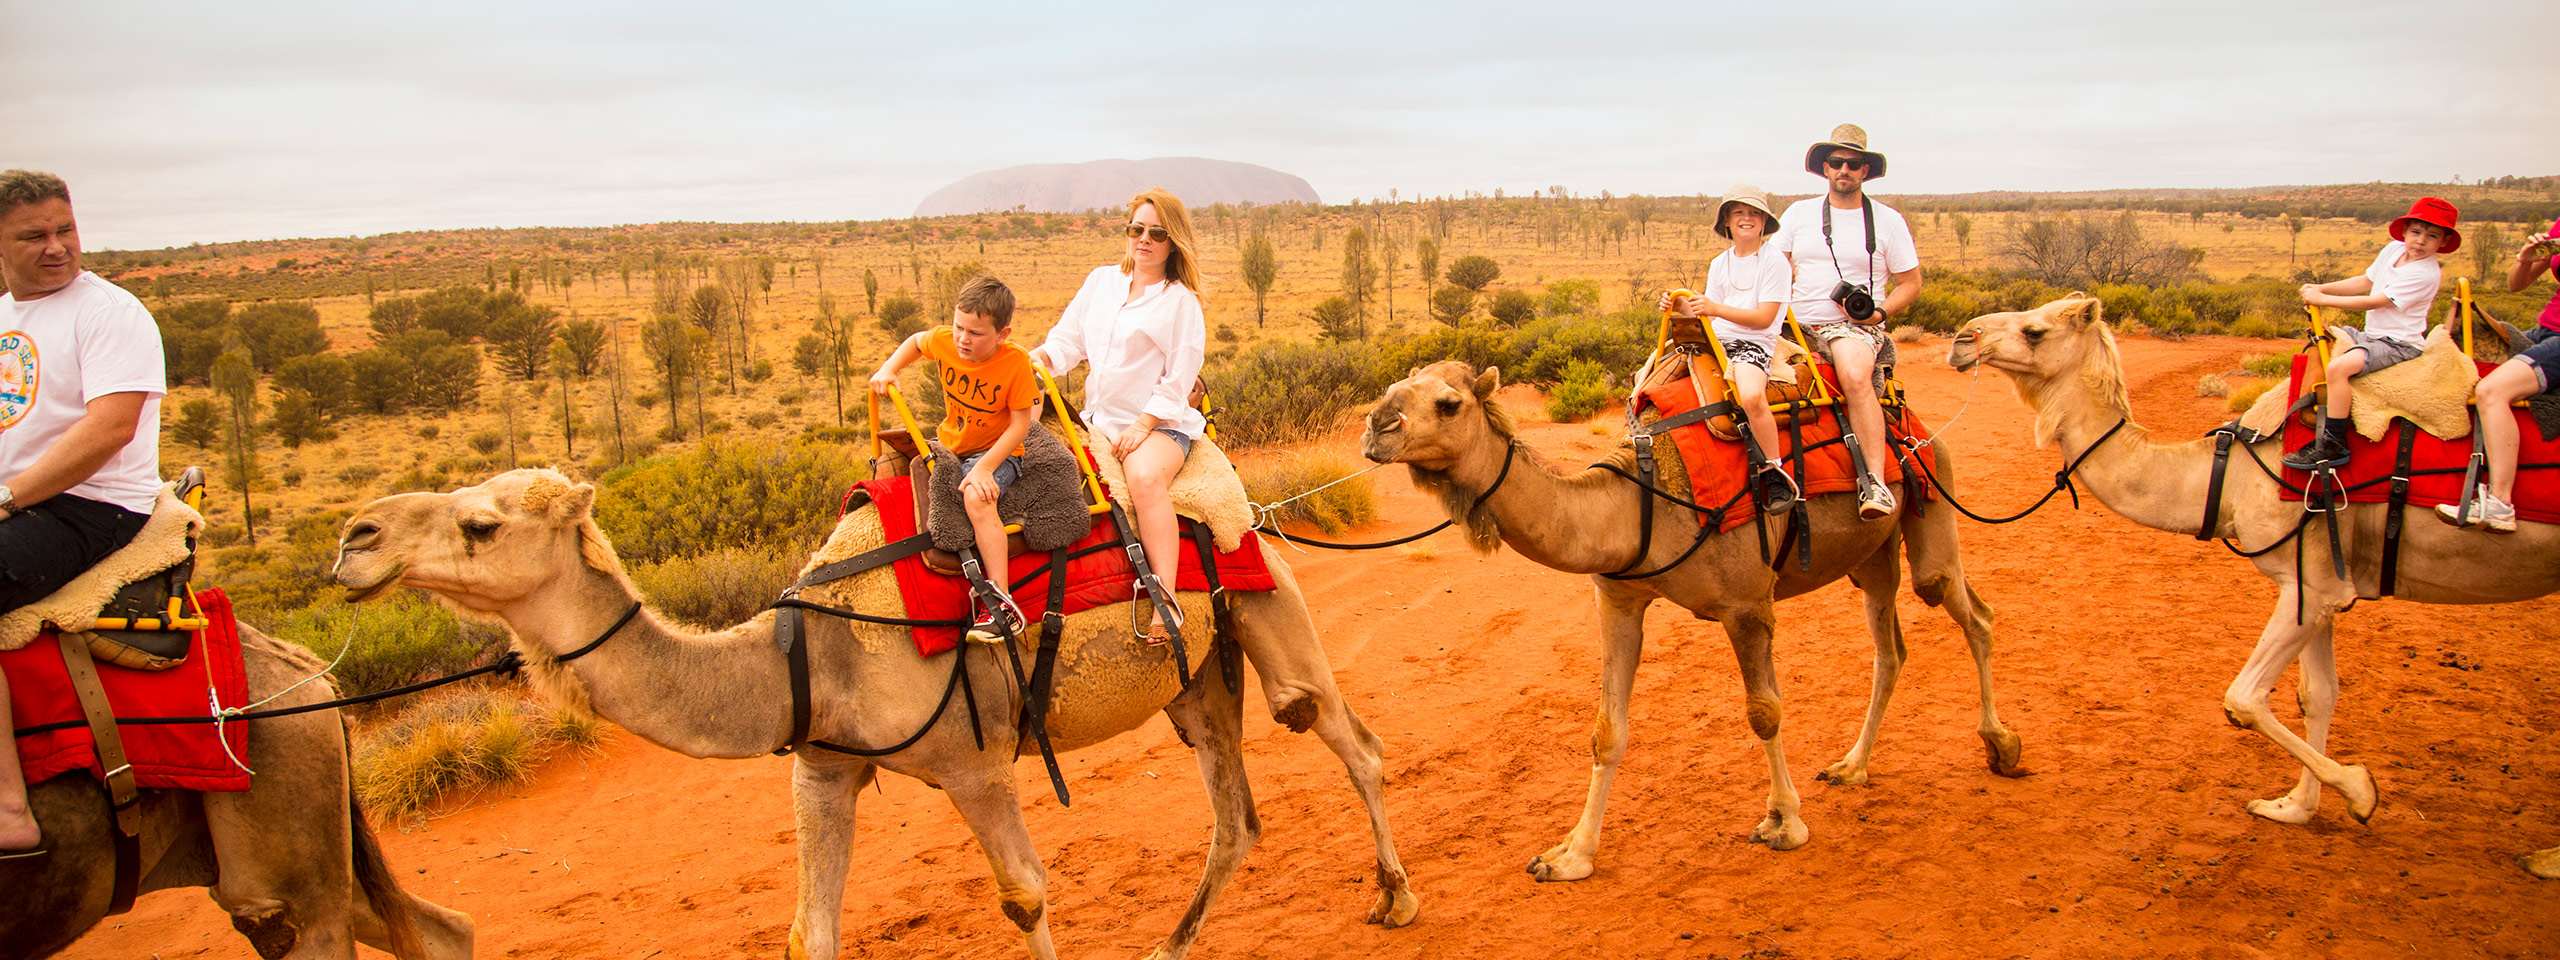 Camel Riding, Red Centre